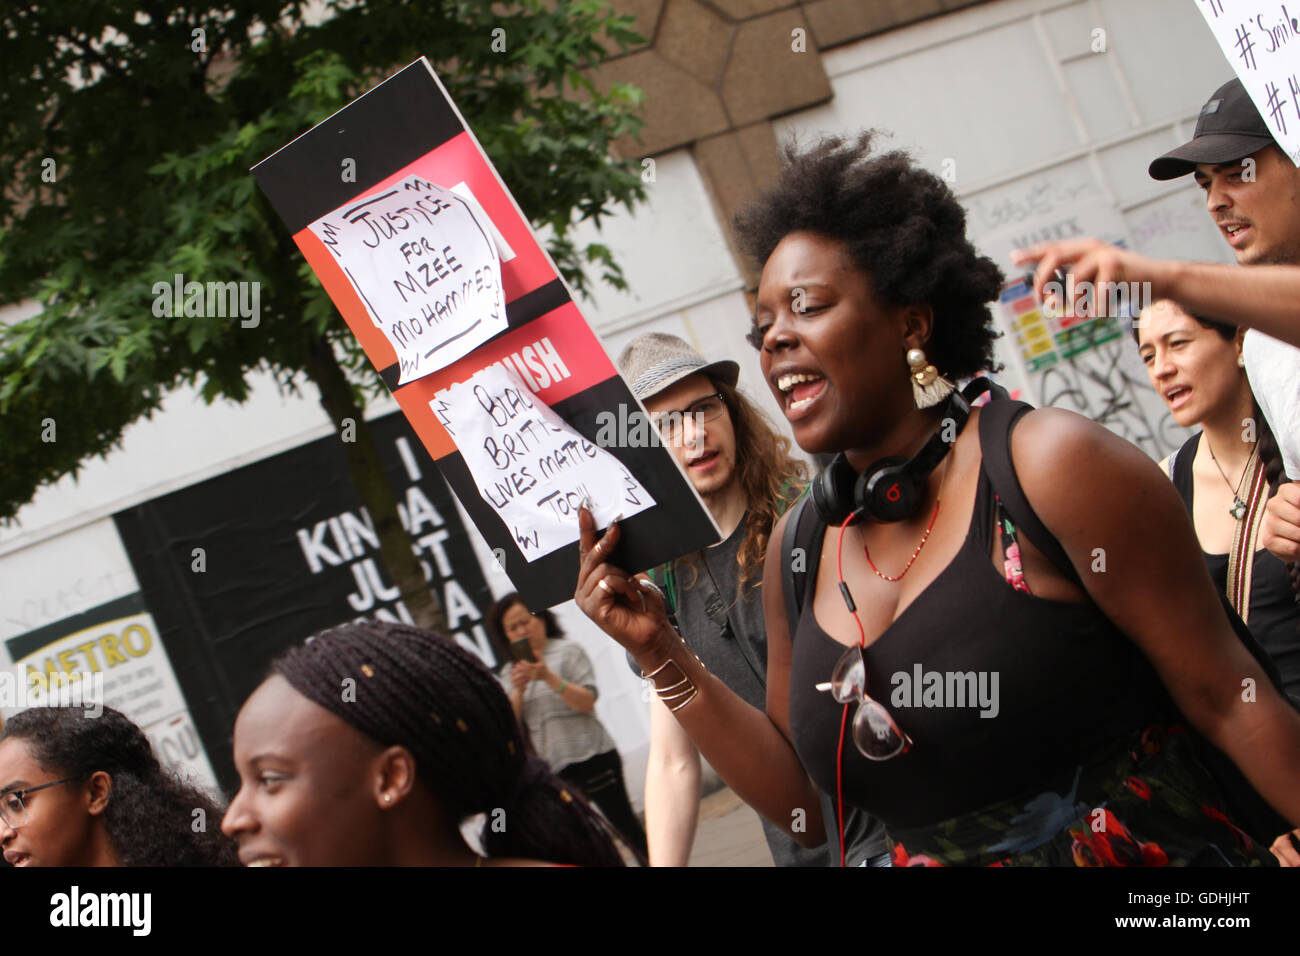 London, UK. 17th July, 2016 Black Lives Matter protesters took to Oxford Street for a solidarity march for Mzee - Stock Image